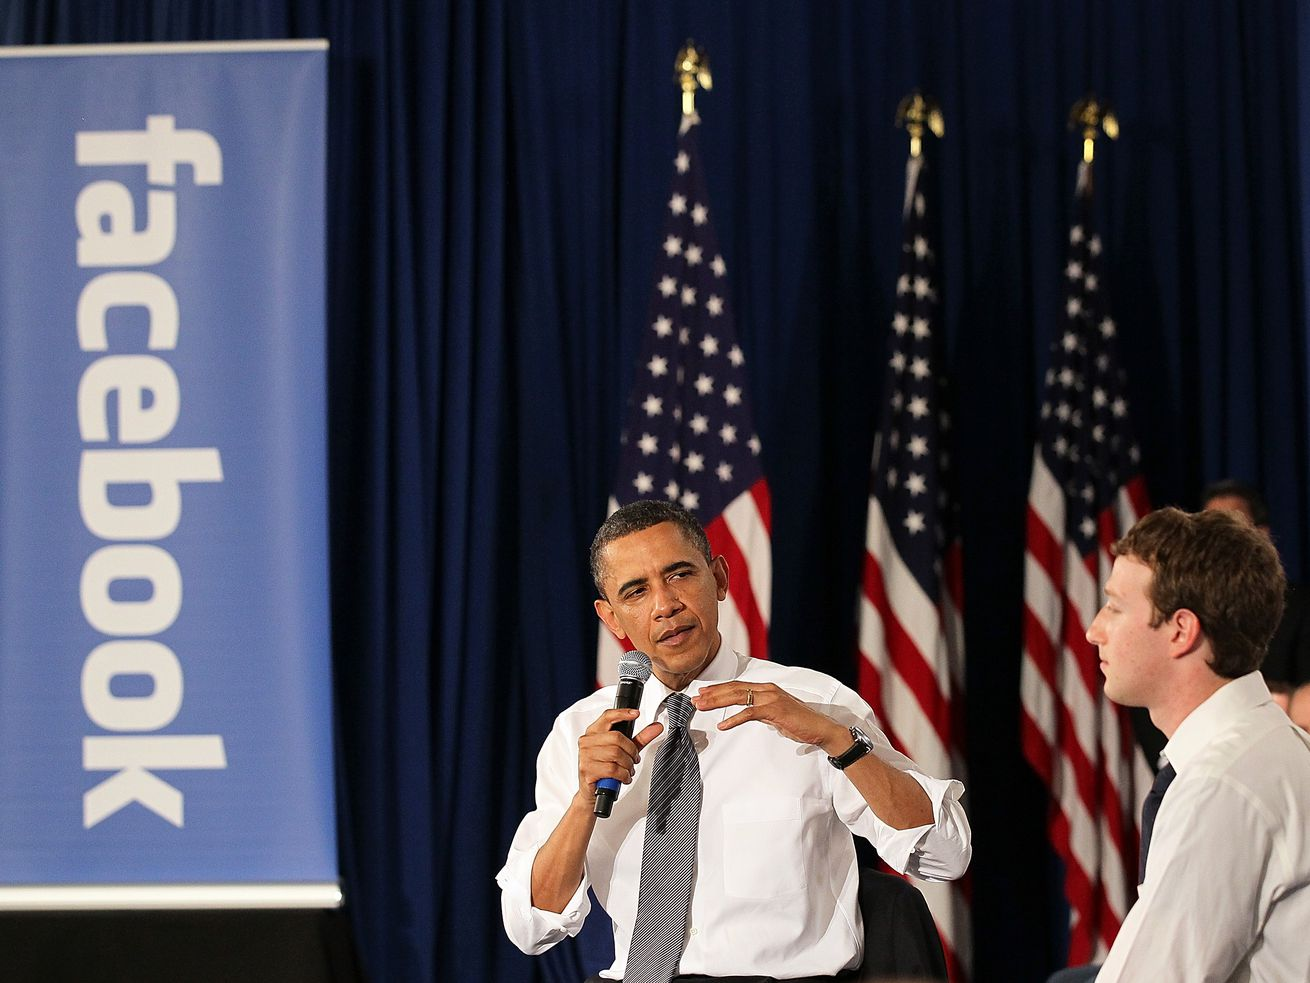 Mark Zuckerberg and Barack Obama holding a town hall in 2011.